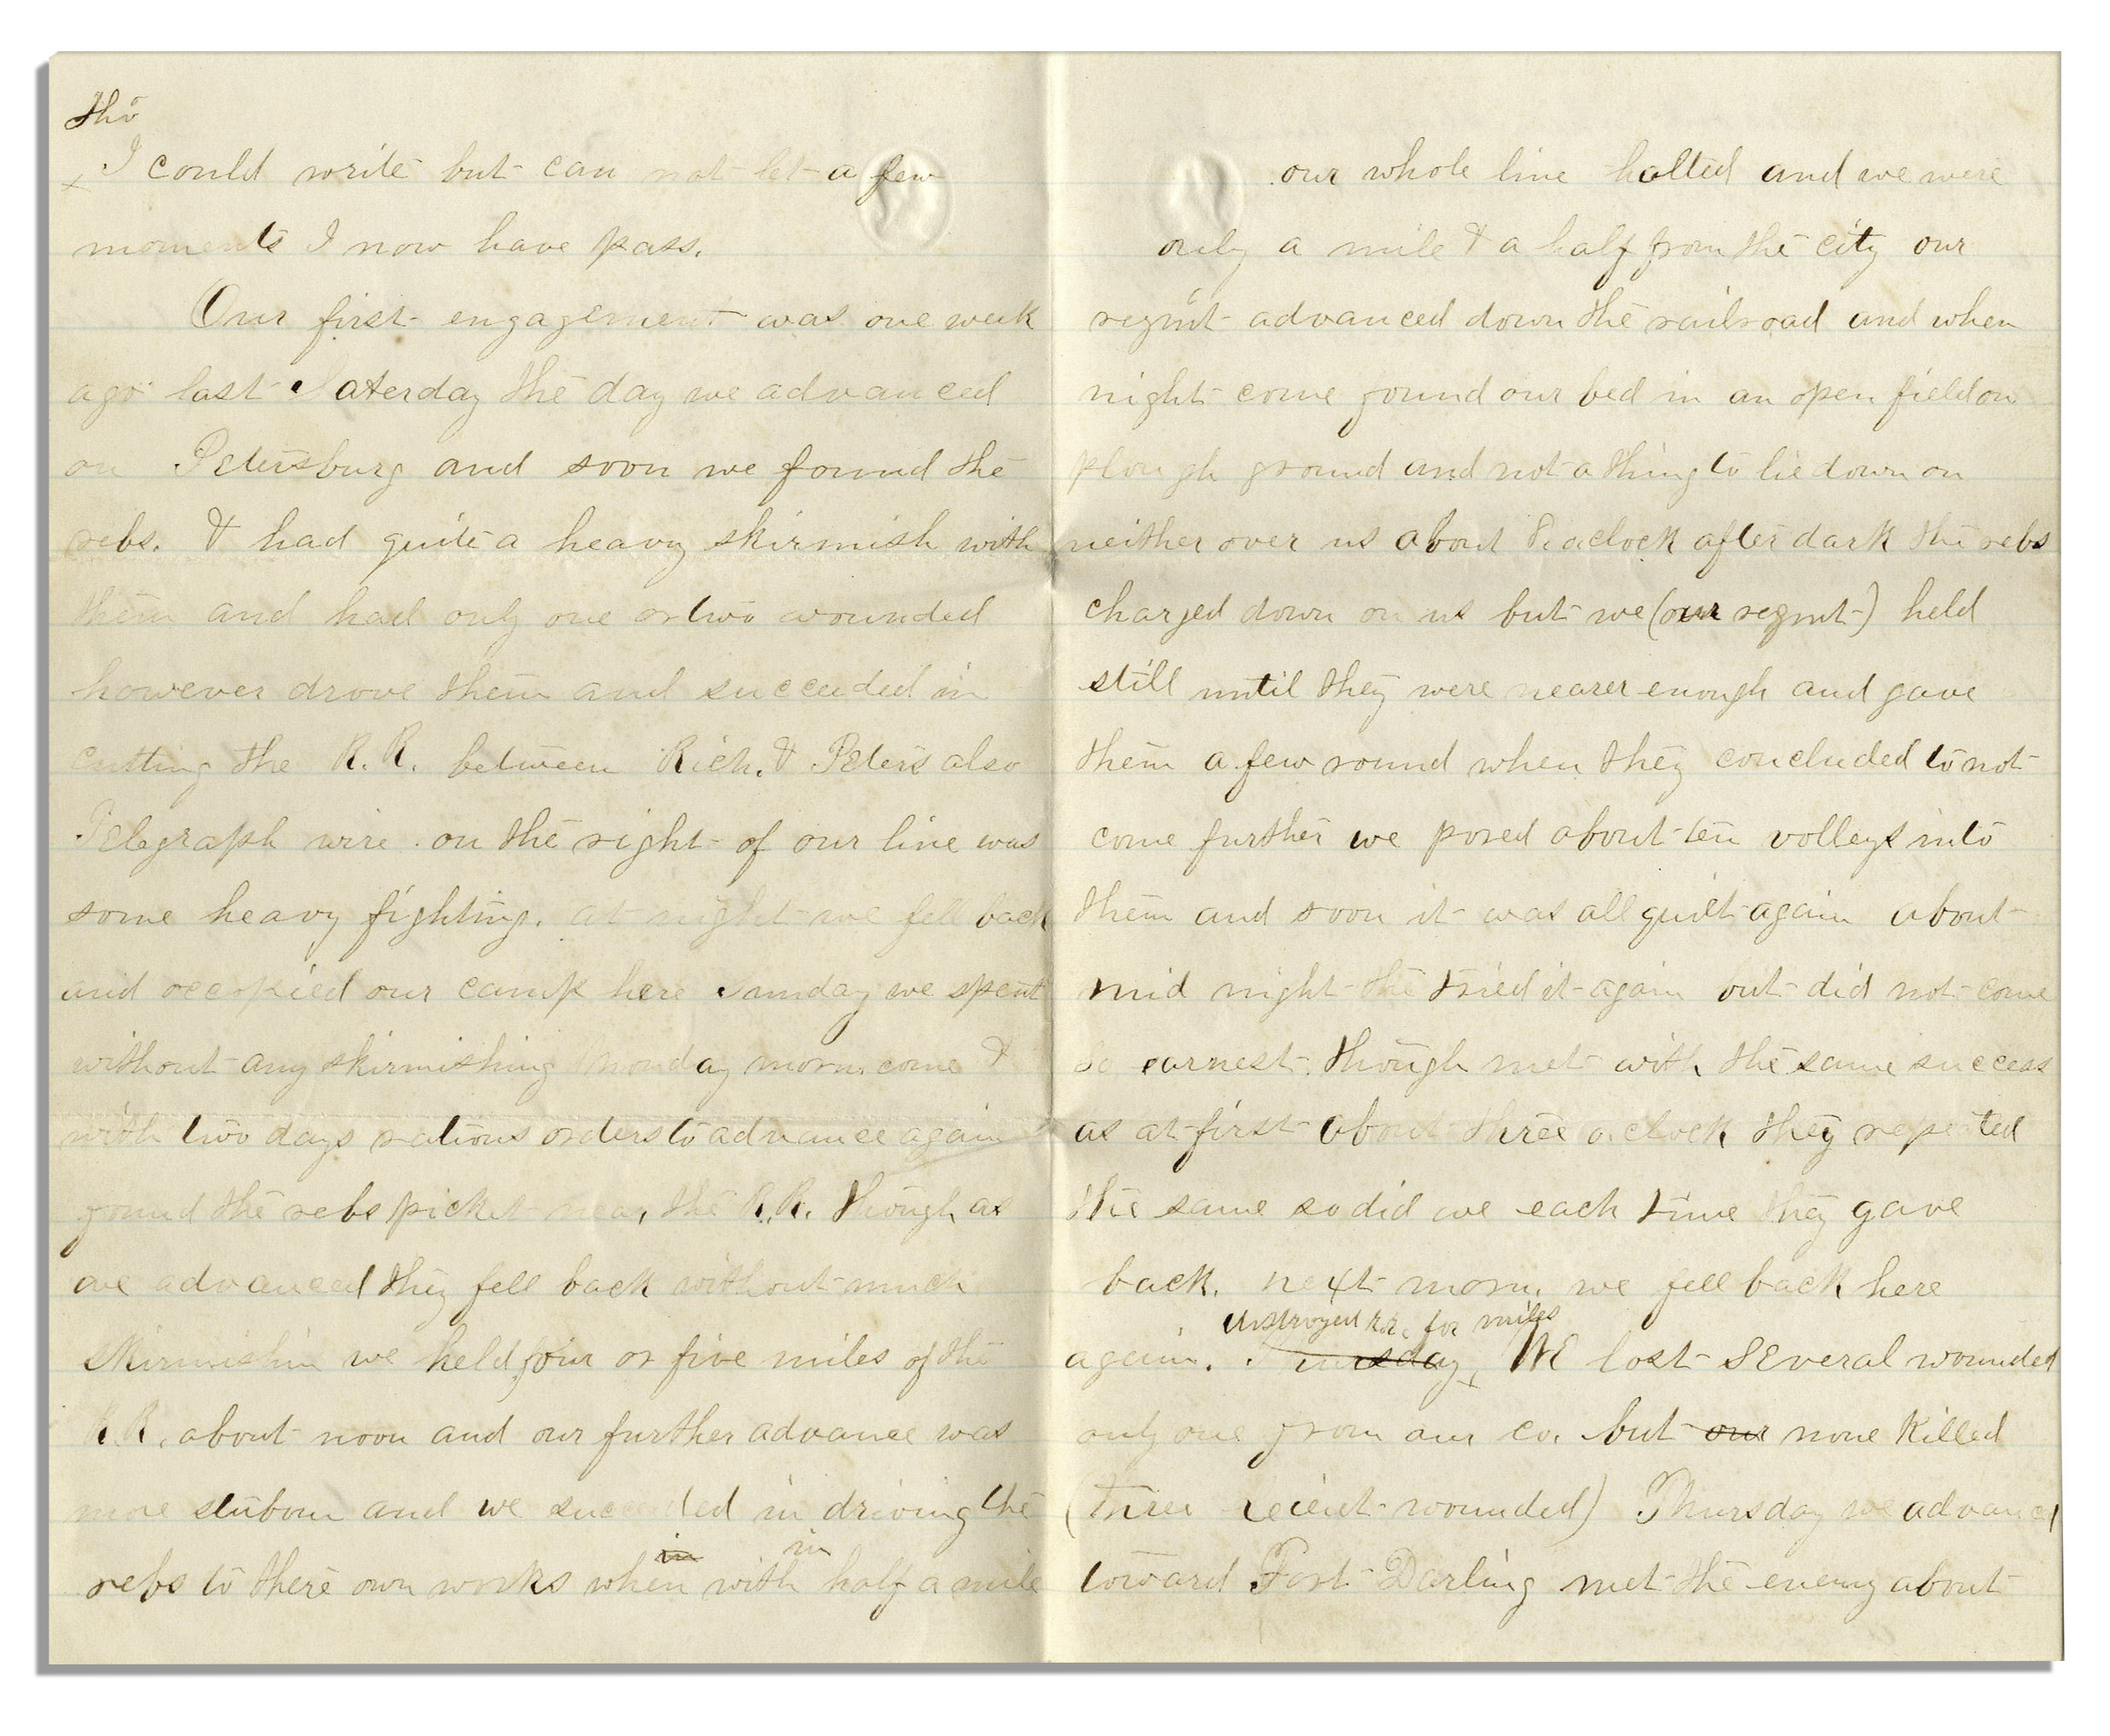 letter signed goethals is widely closing a letter with